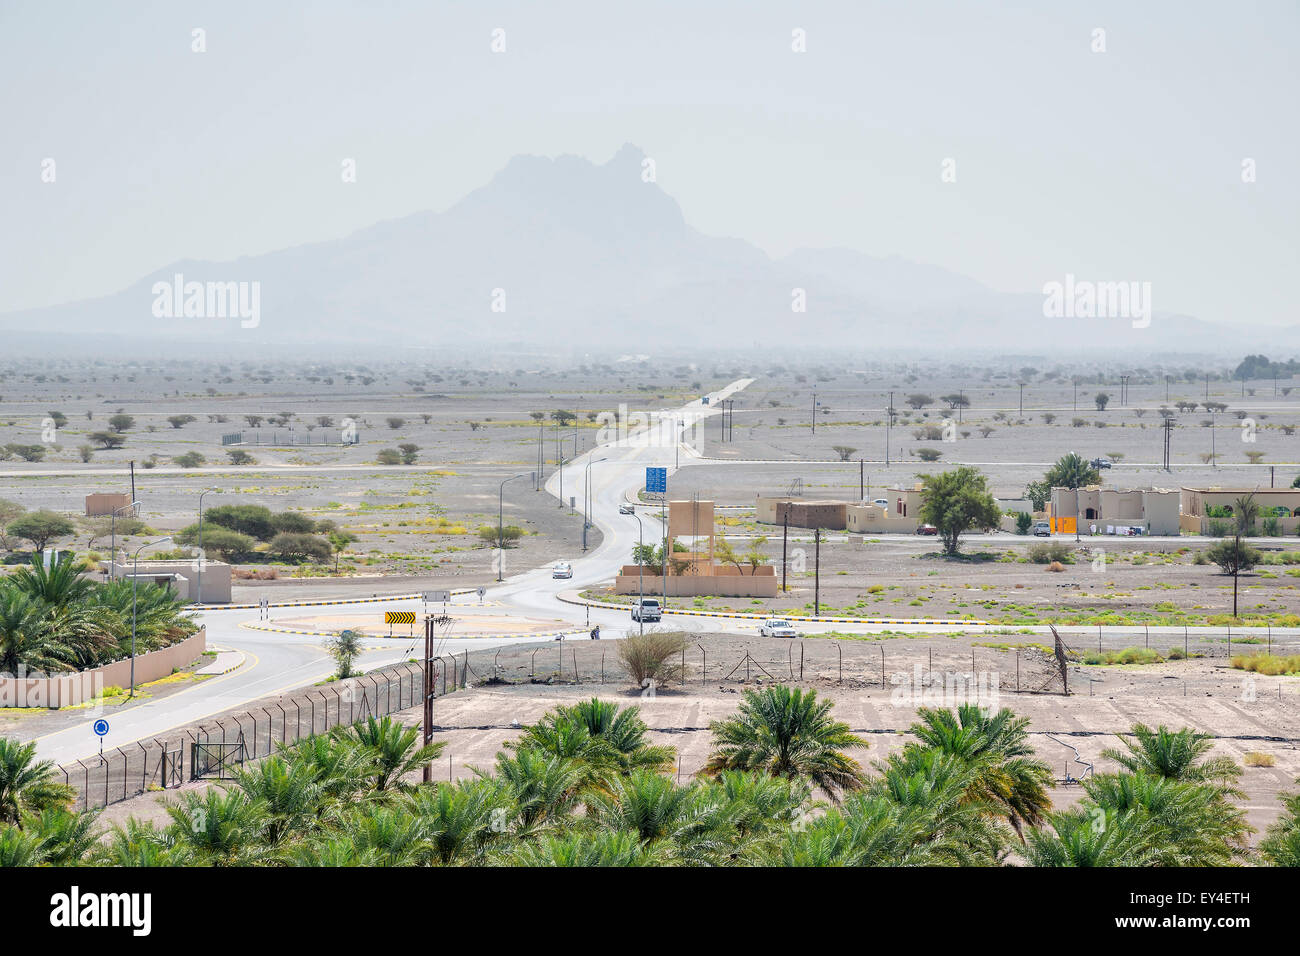 Image of landscape at fort jabreen in sultanate Oman, middle east - Stock Image